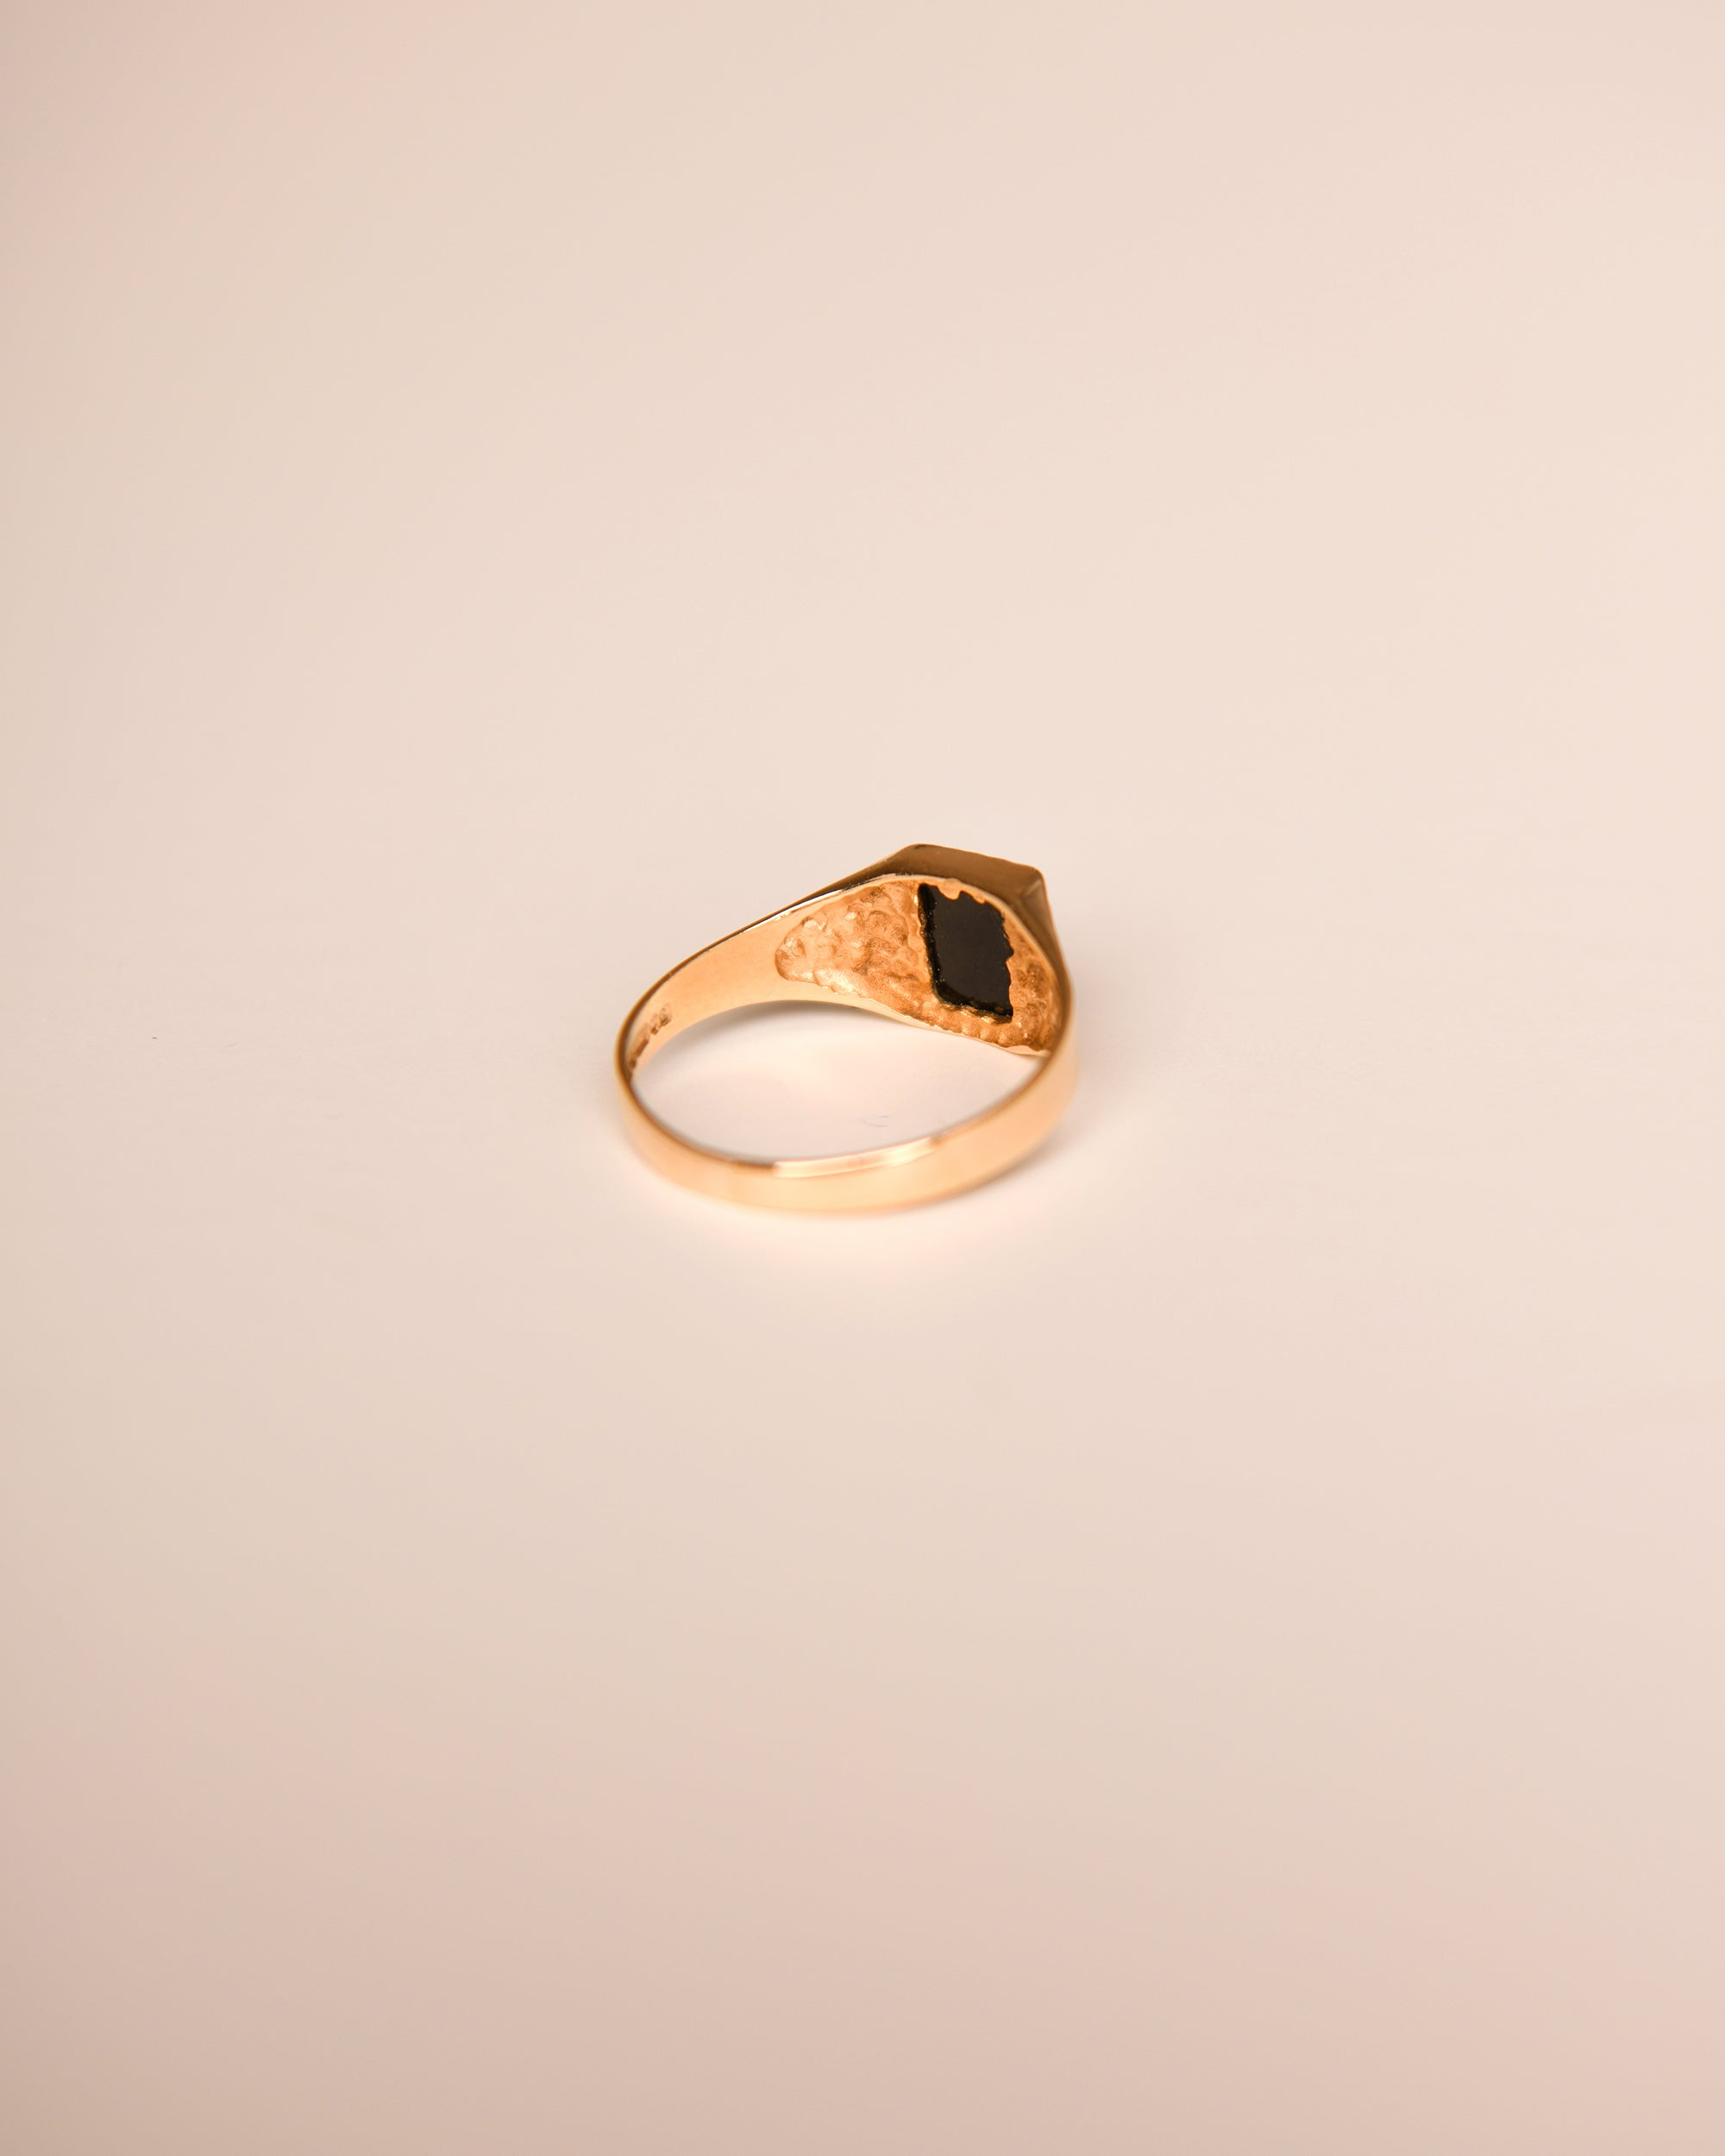 Chloé 9ct Gold Vintage Onyx Ring